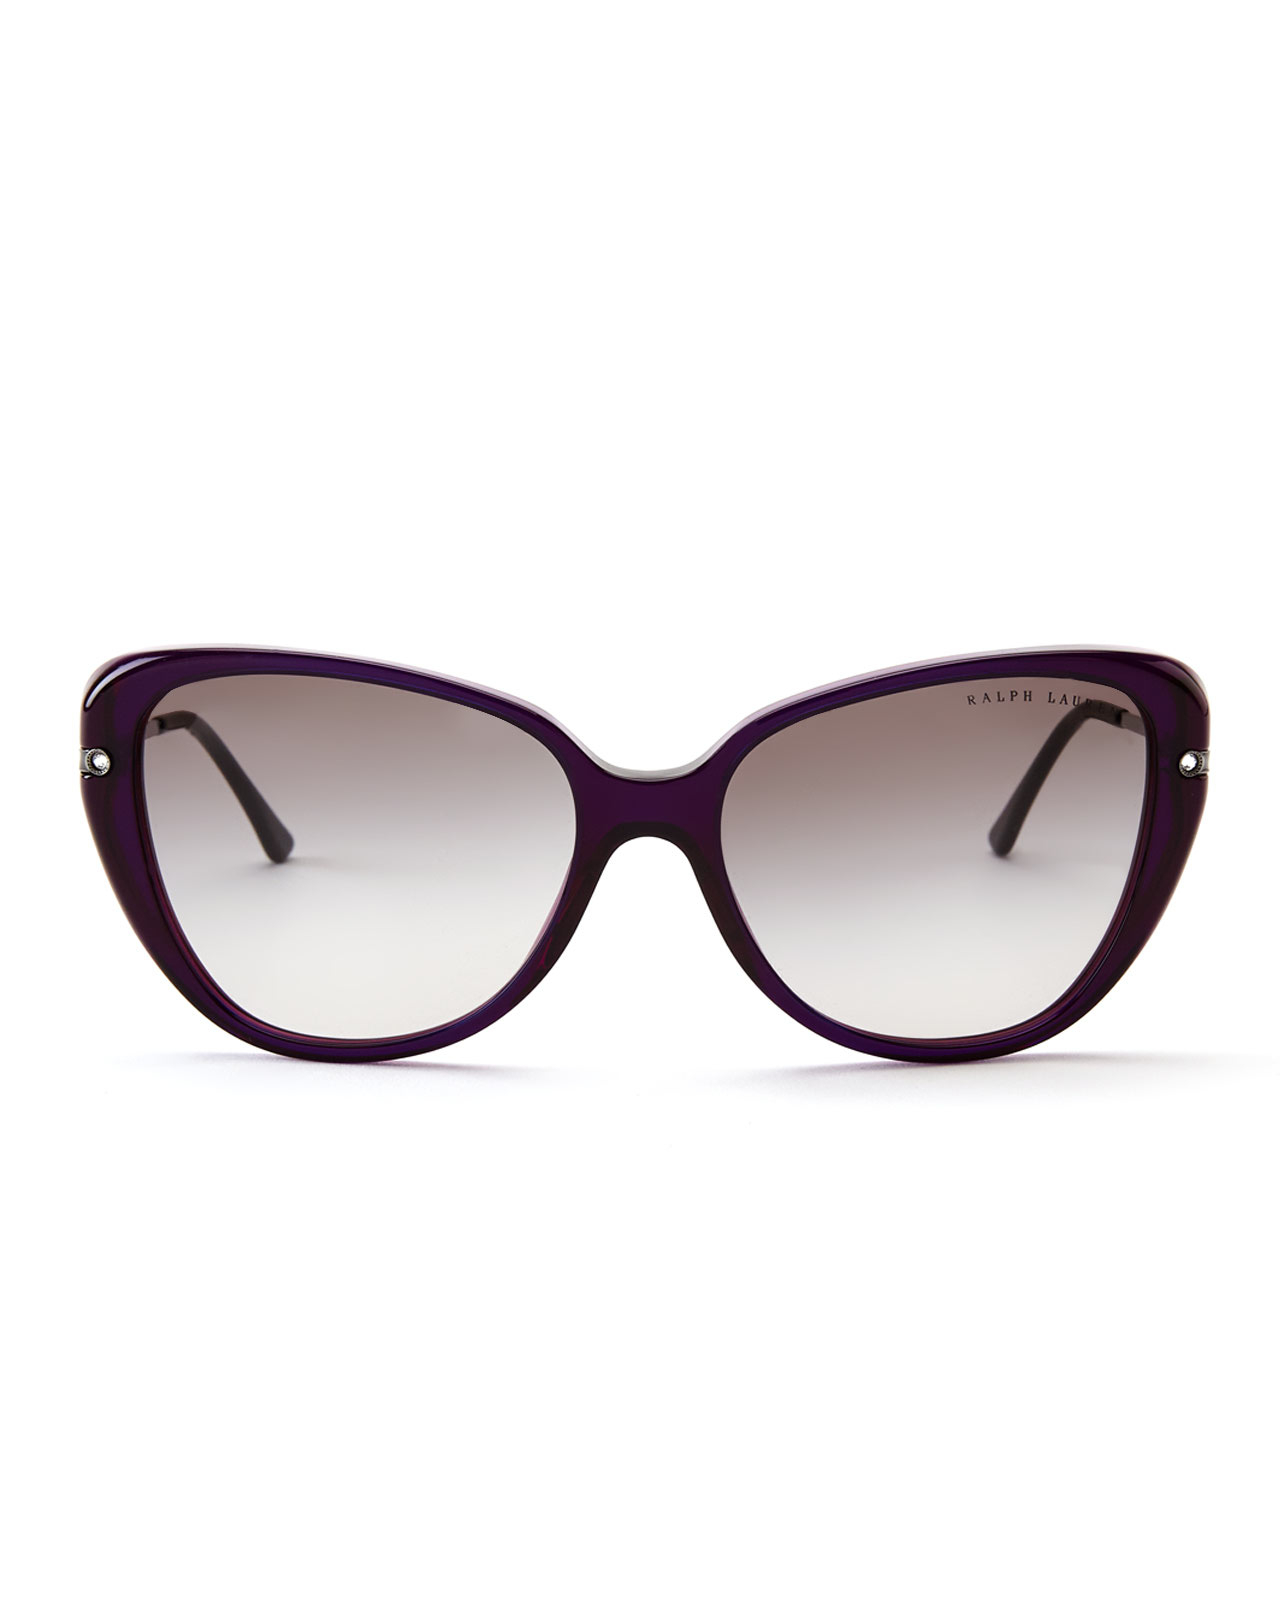 Cat Eye Sunglasses Ralph Lauren  ralph lauren rl8094 purple cat eye sunglasses in purple lyst